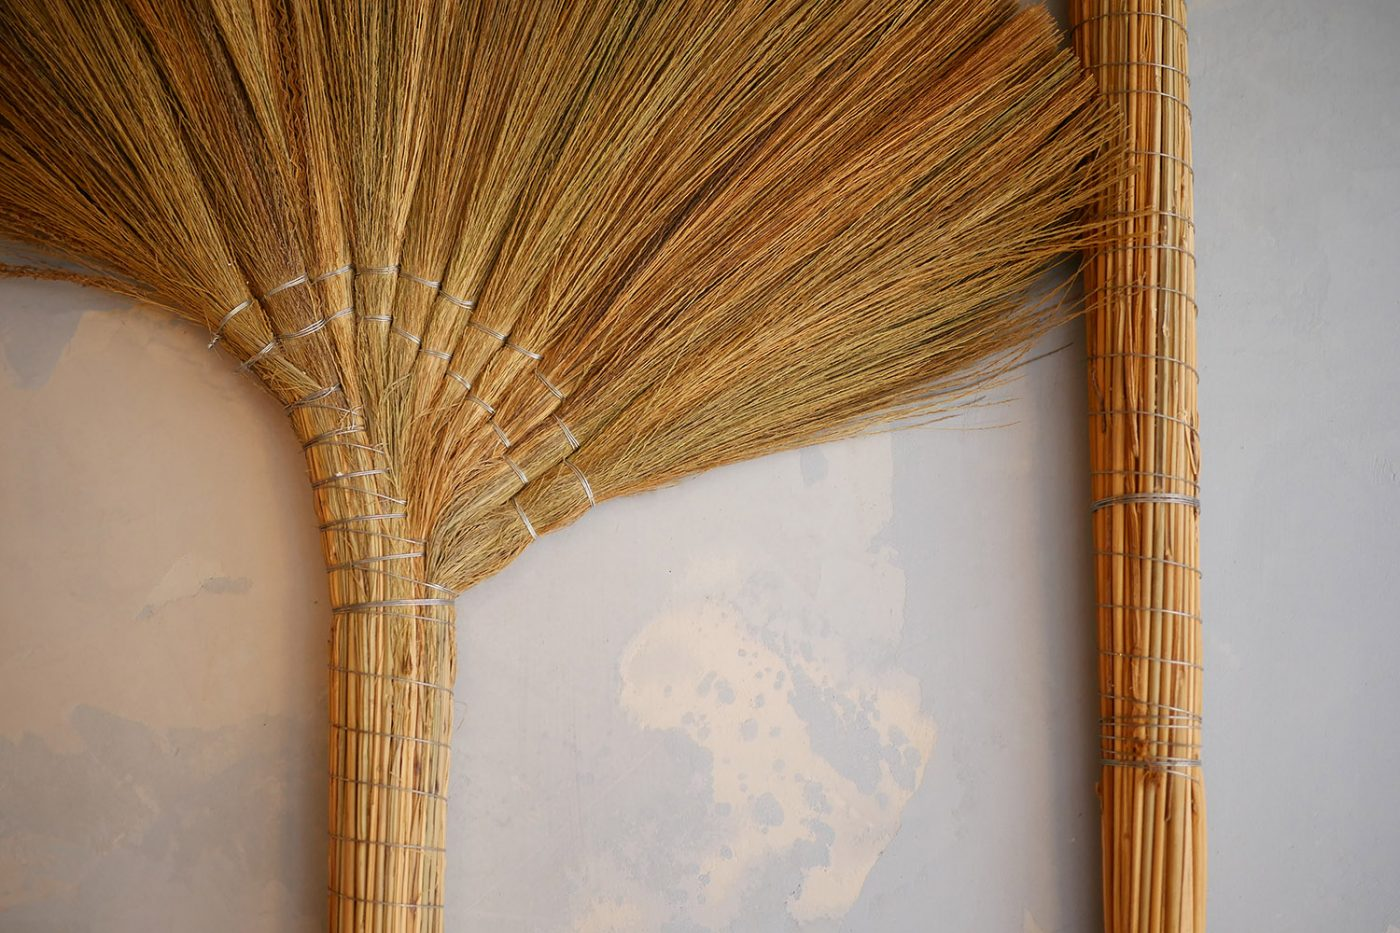 Mam_Restaurant_bar_Design_details_interior_broom_blue_vietnamese